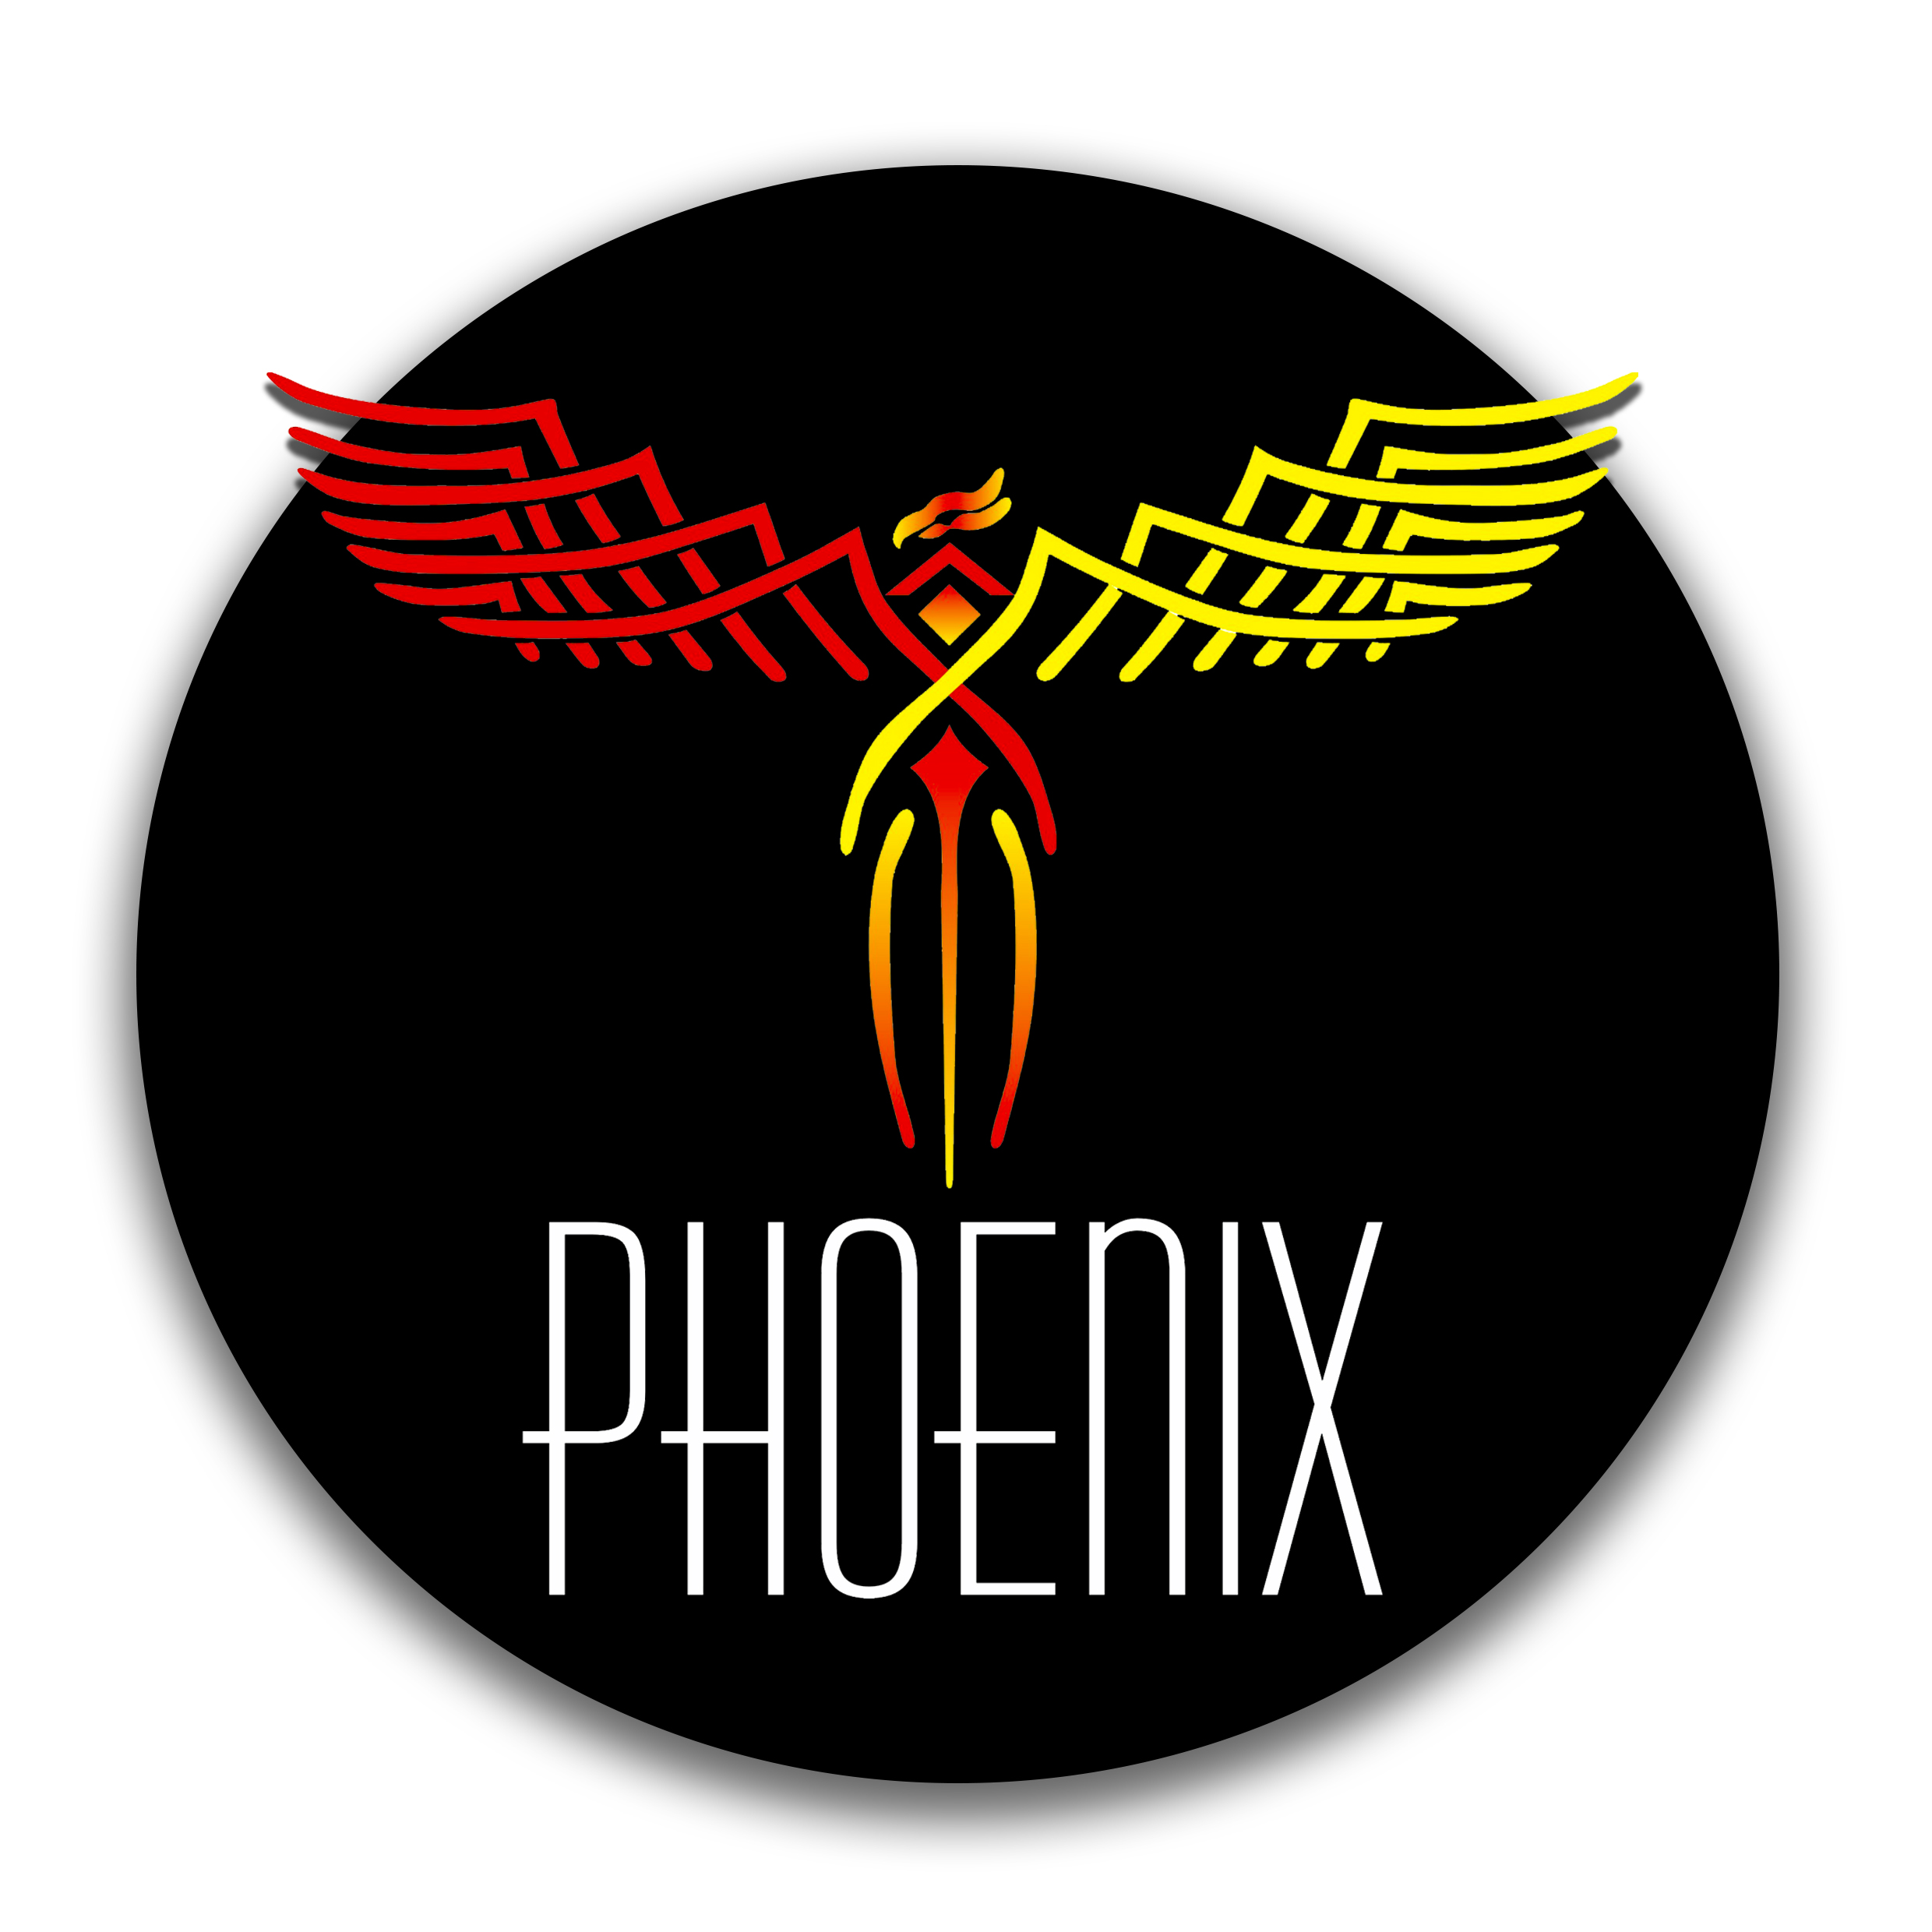 The Phoenix Hotel Logo and Images